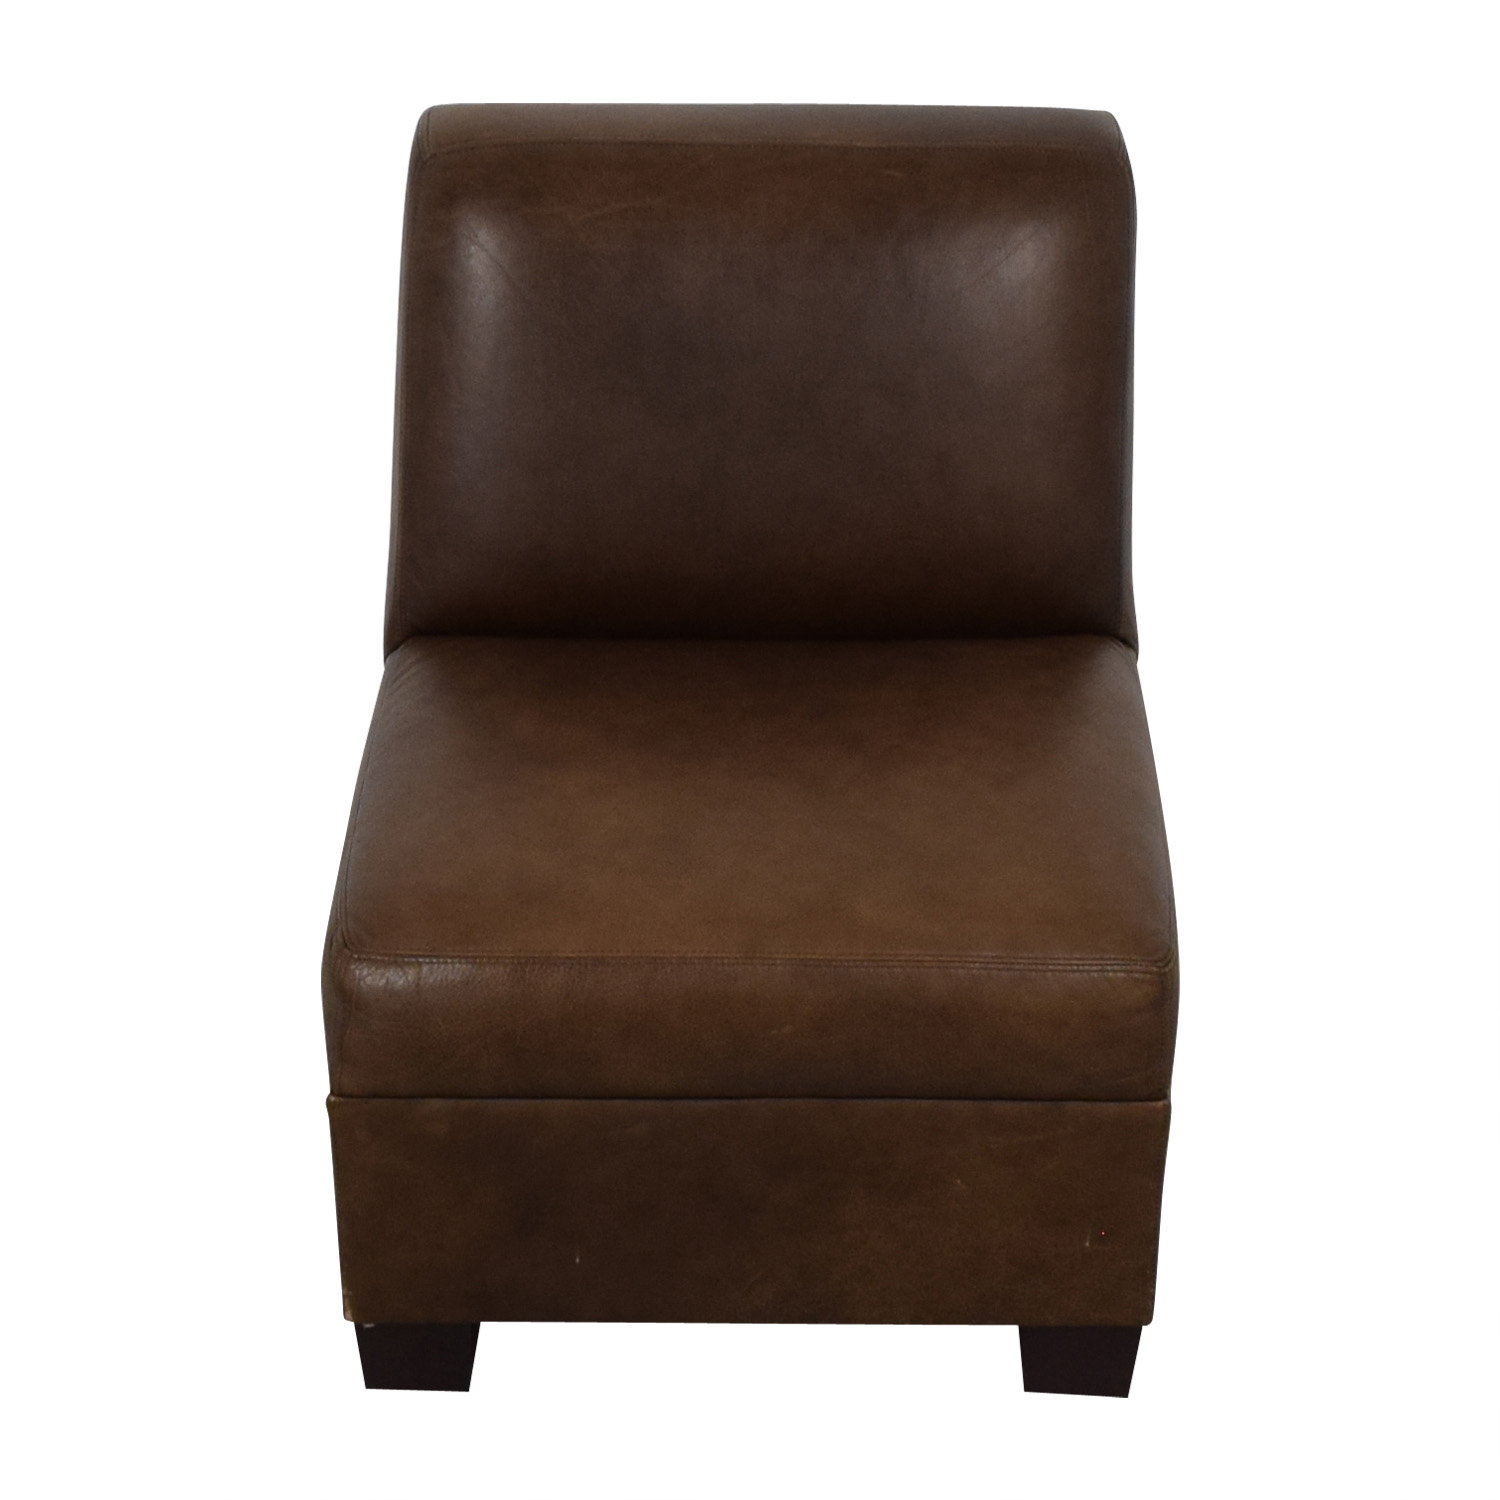 Pottery Barn Leather Lounge Chair / Accent Chairs